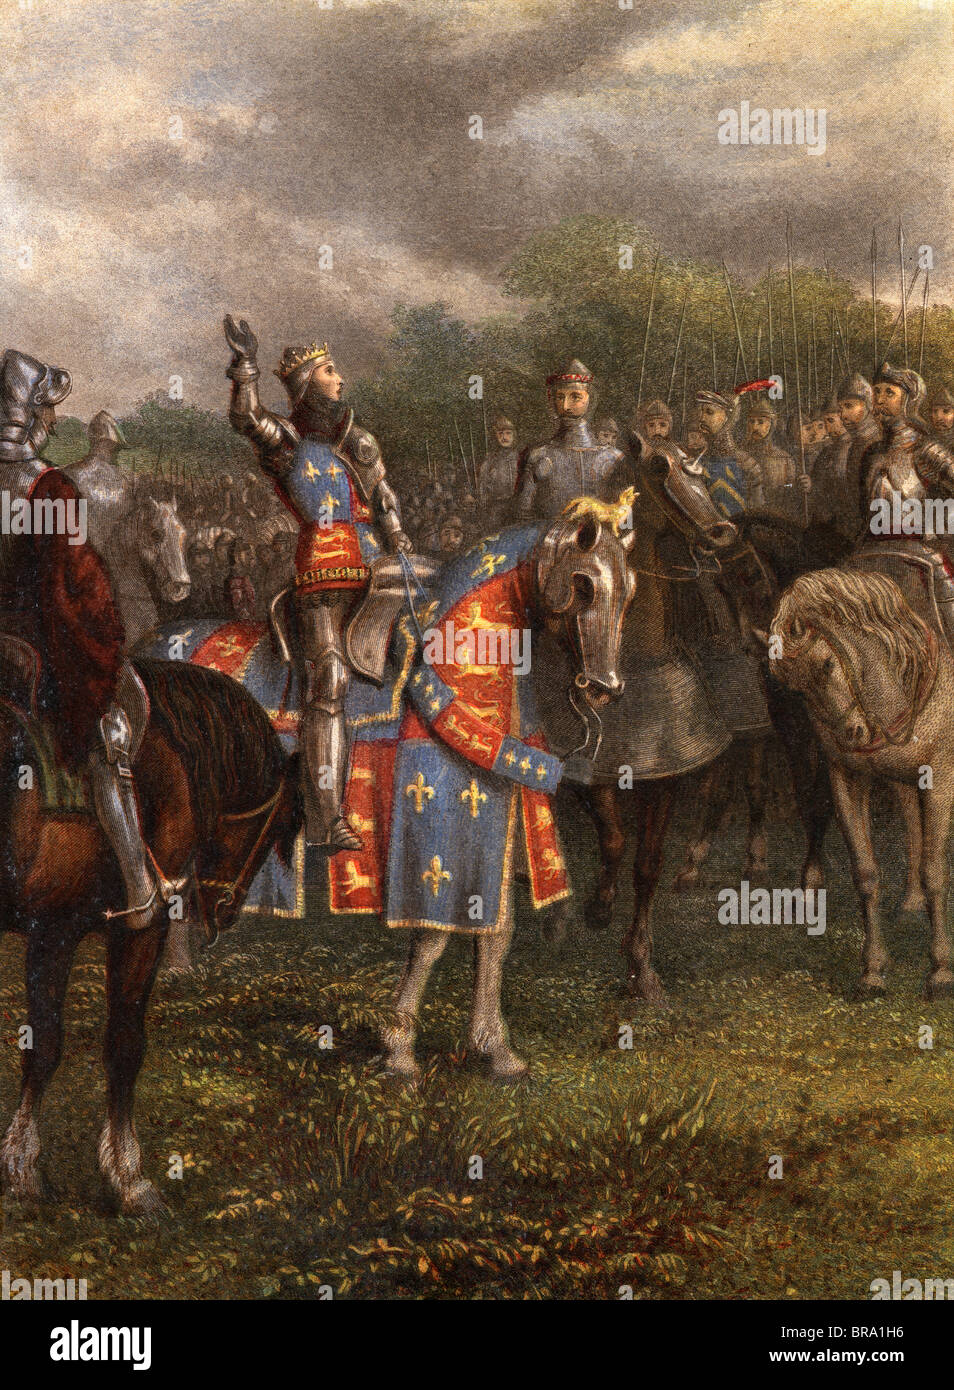 1400s HENRY V OF ENGLAND SPEAKING TO HIS ARMY FROM ARMORED HORSE BEFORE BATTLE OF AGINCOURT OCTOBER 25 1415 15TH - Stock Image